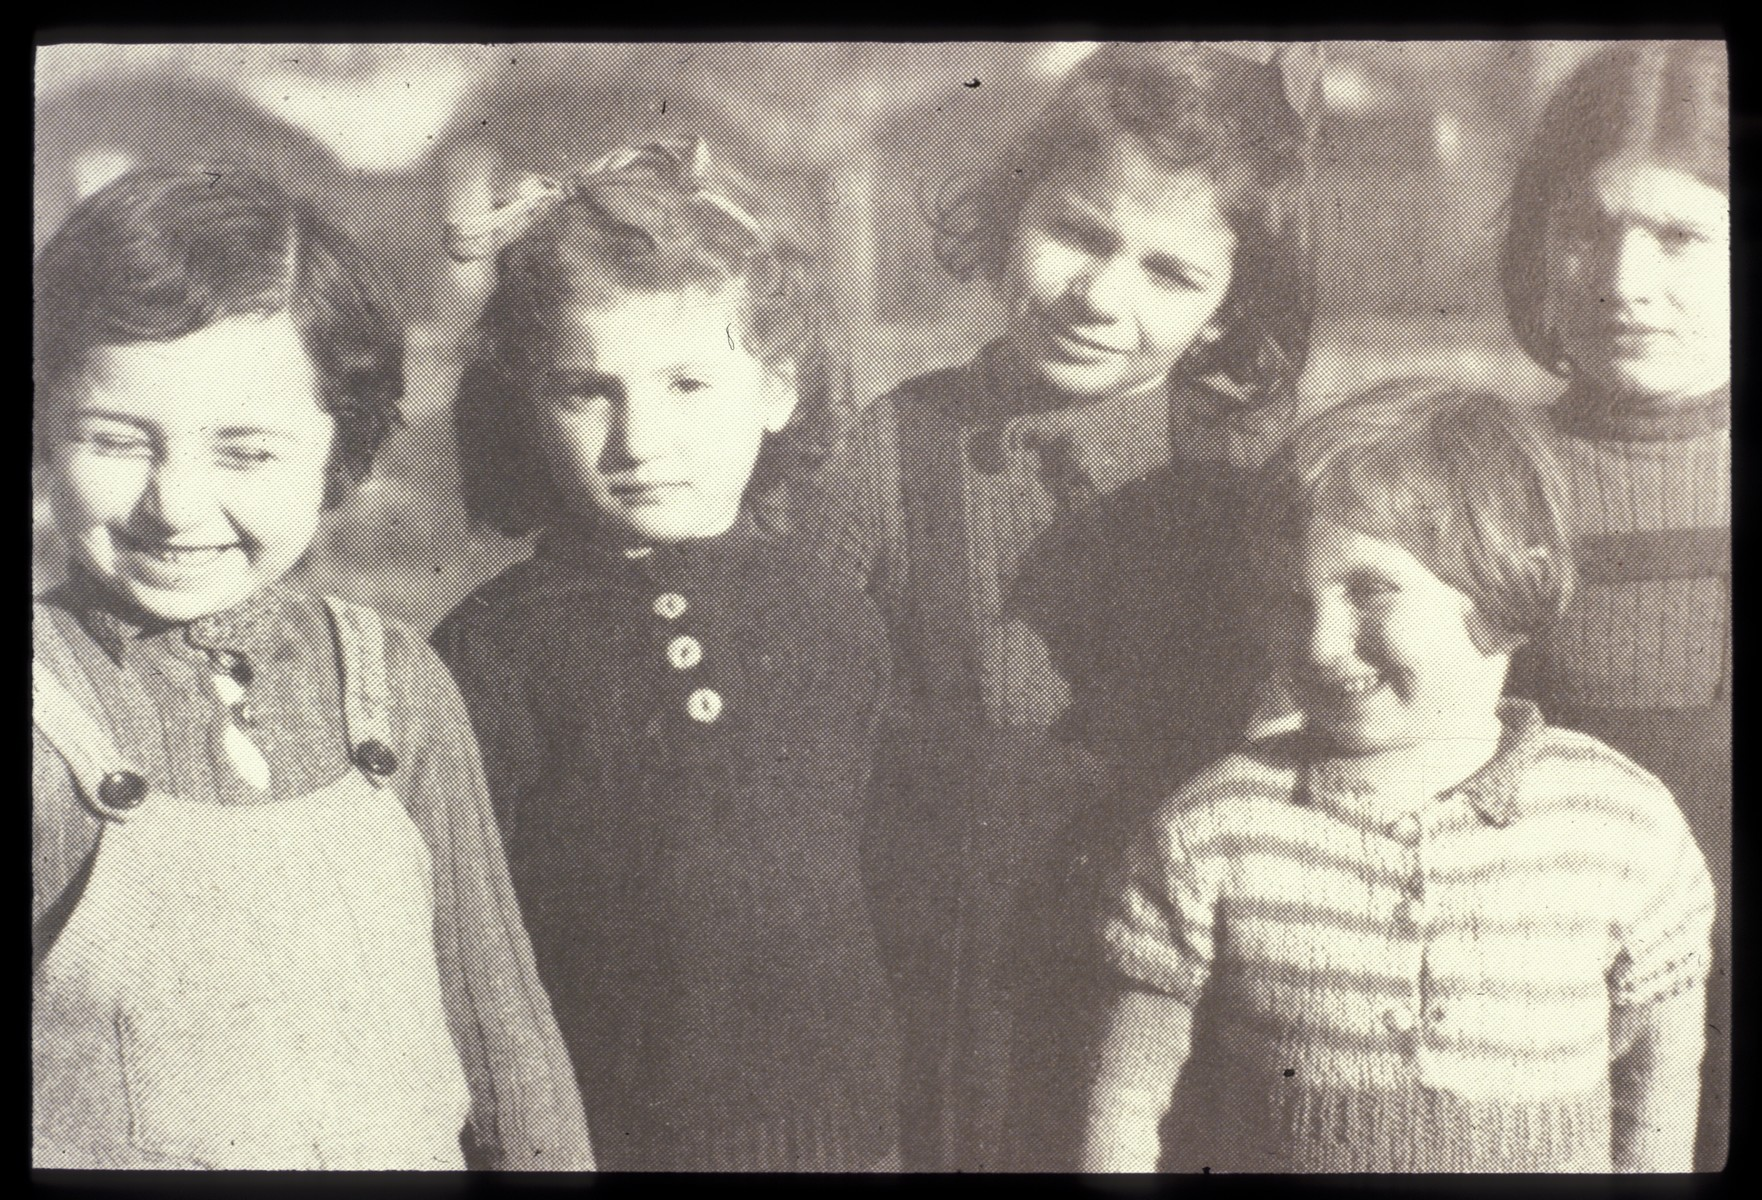 Portrait of five young girls [who probably were among the hundreds of Jewish children hidden by Father Bruno].